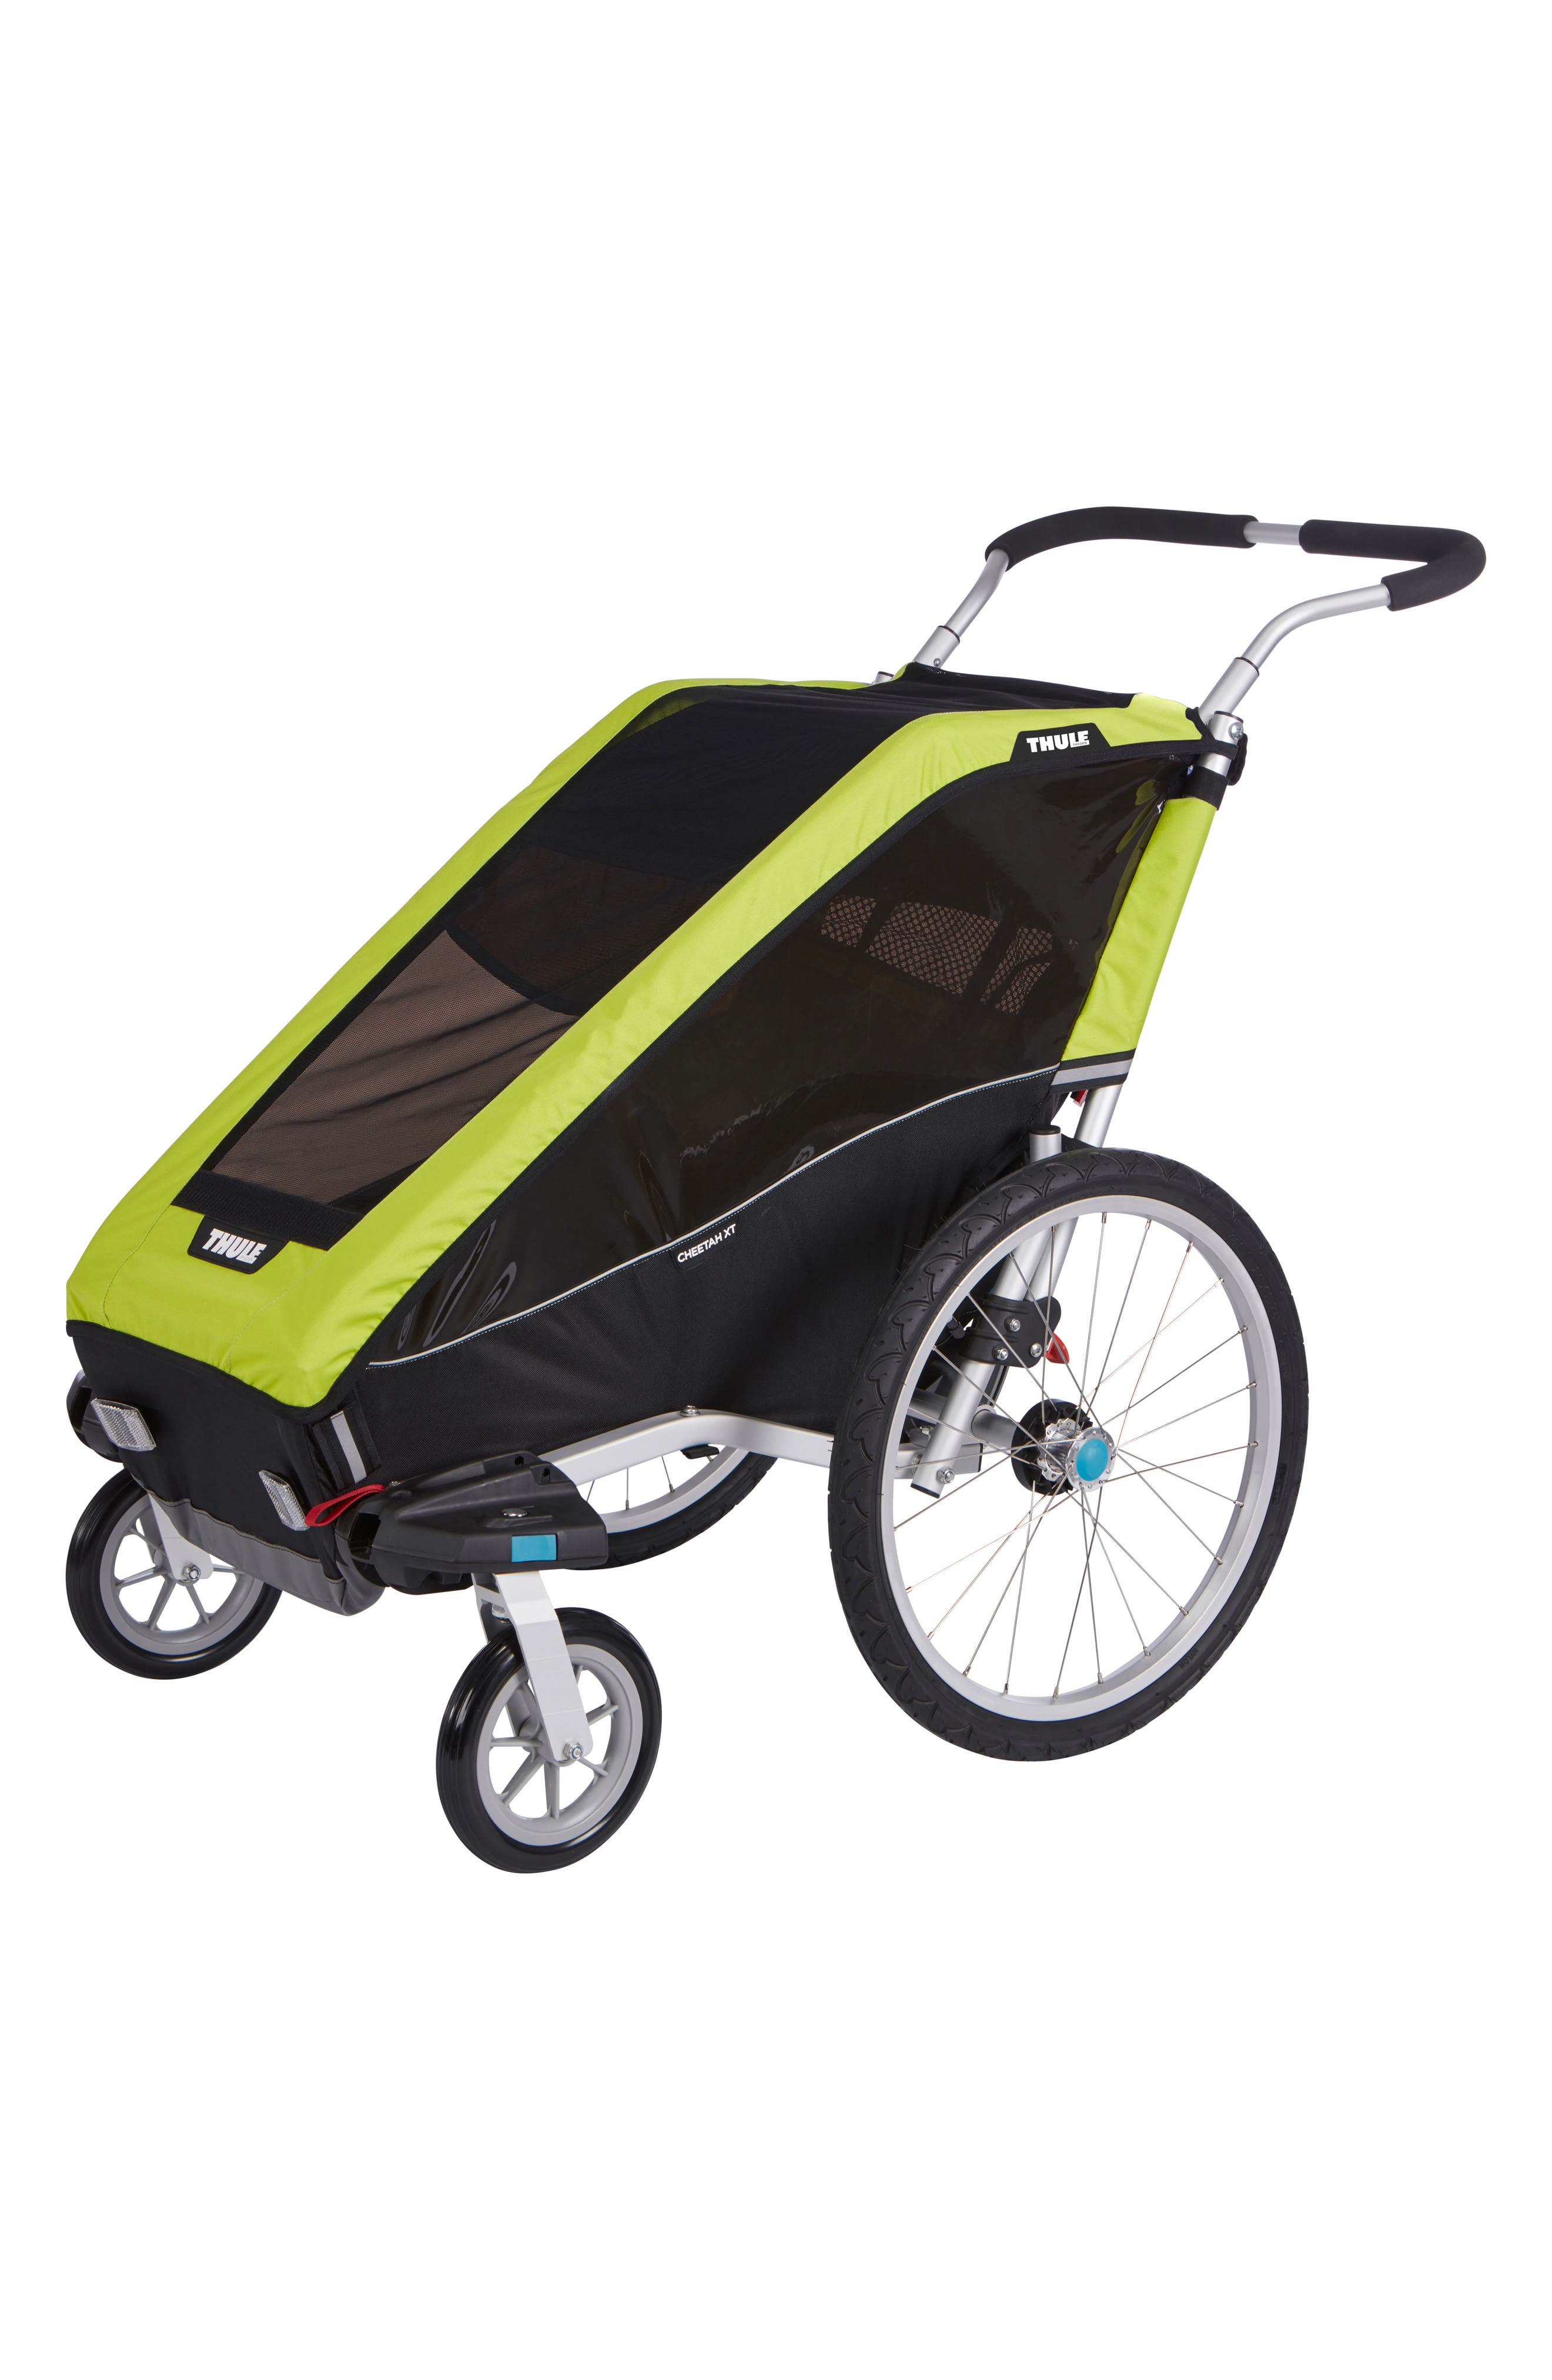 Chariot Cheetah XT 2 Multisport Cycle Trailer/Stroller,                             Main thumbnail 1, color,                             Chartreuse